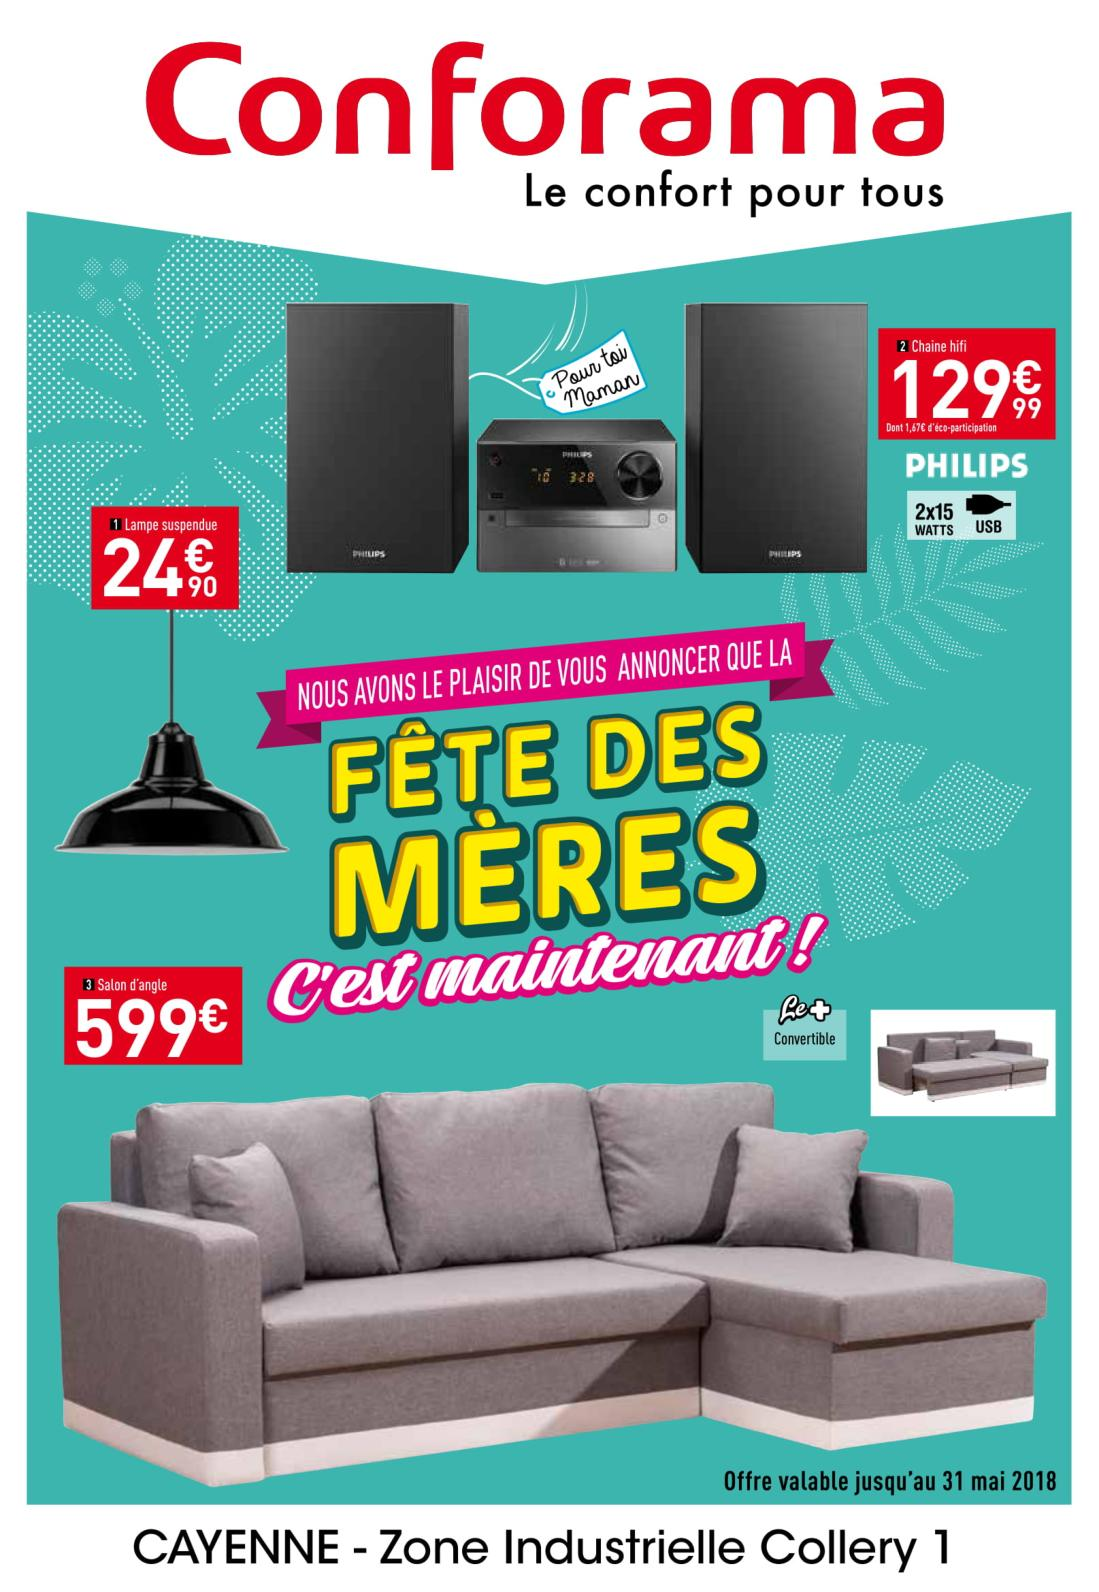 Sofa Paris Conforama Sofa Cayenne Conforama